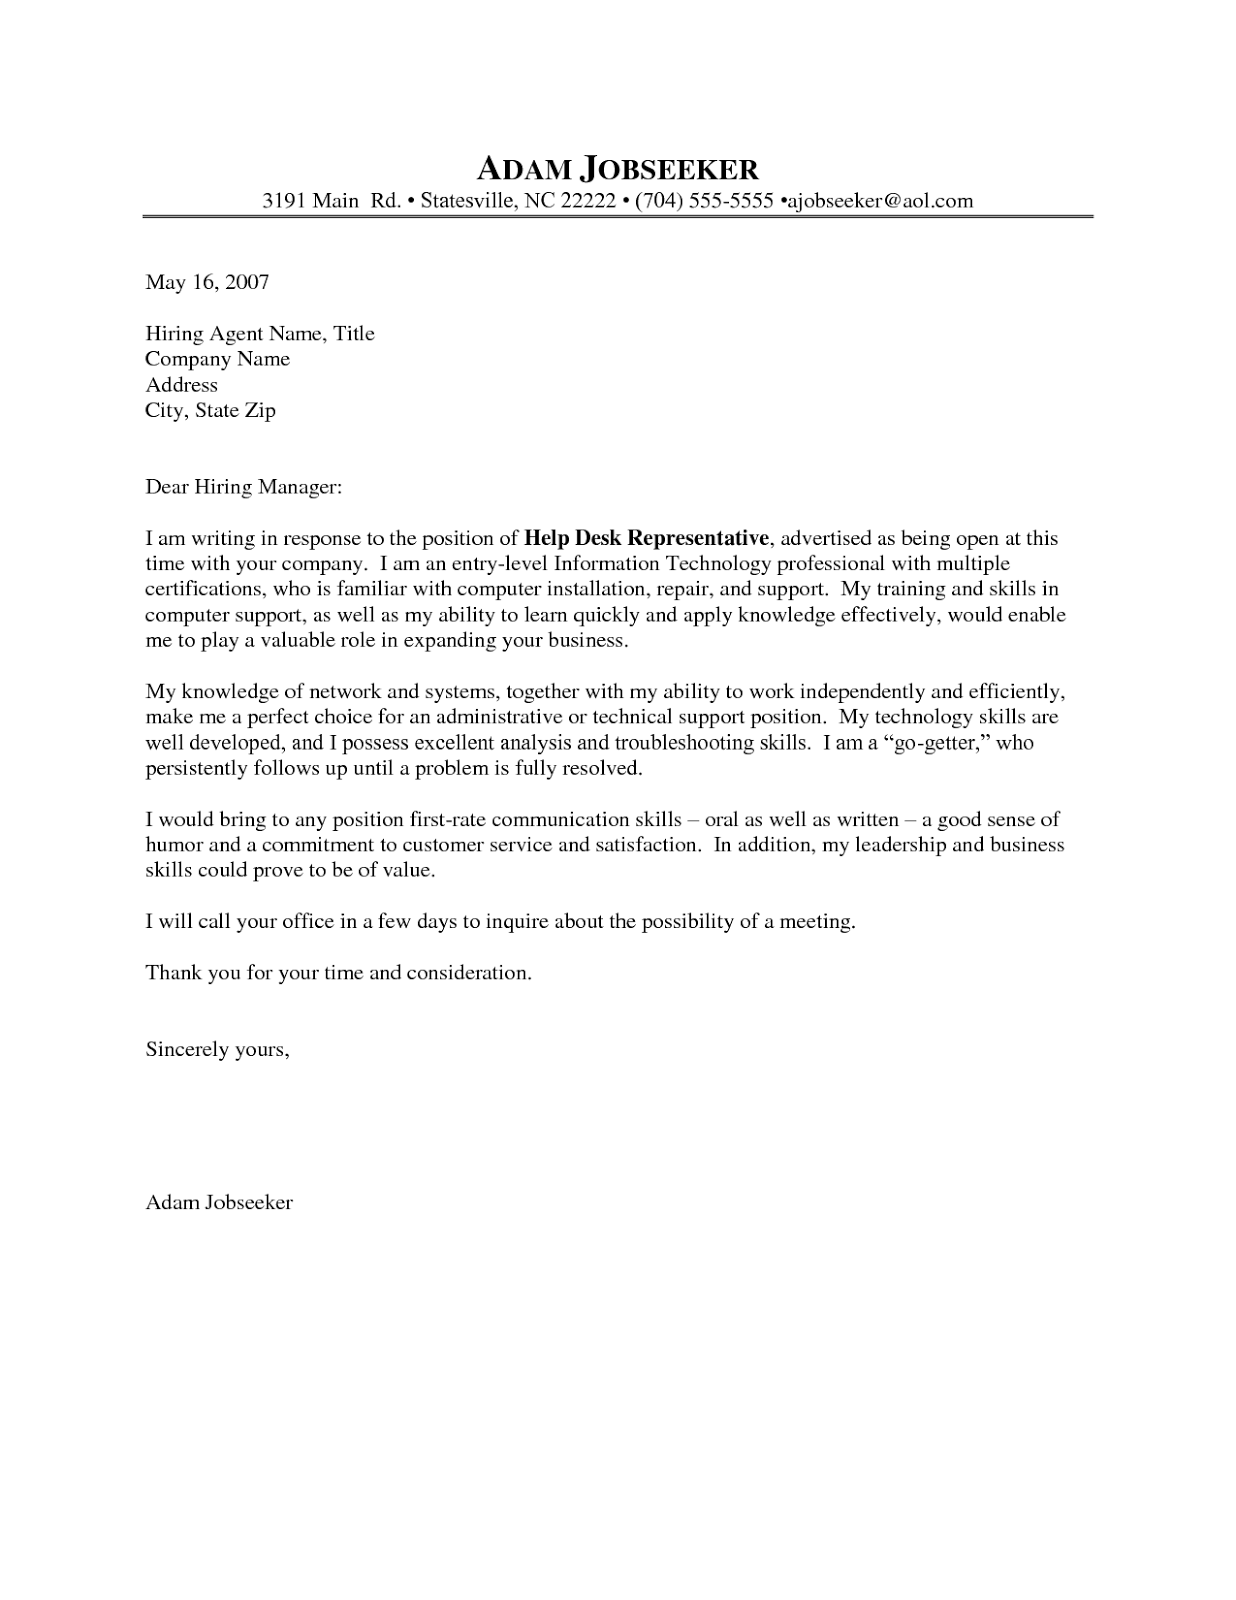 clerical cover letter cover aploon engineering - Cover Letter Clerical